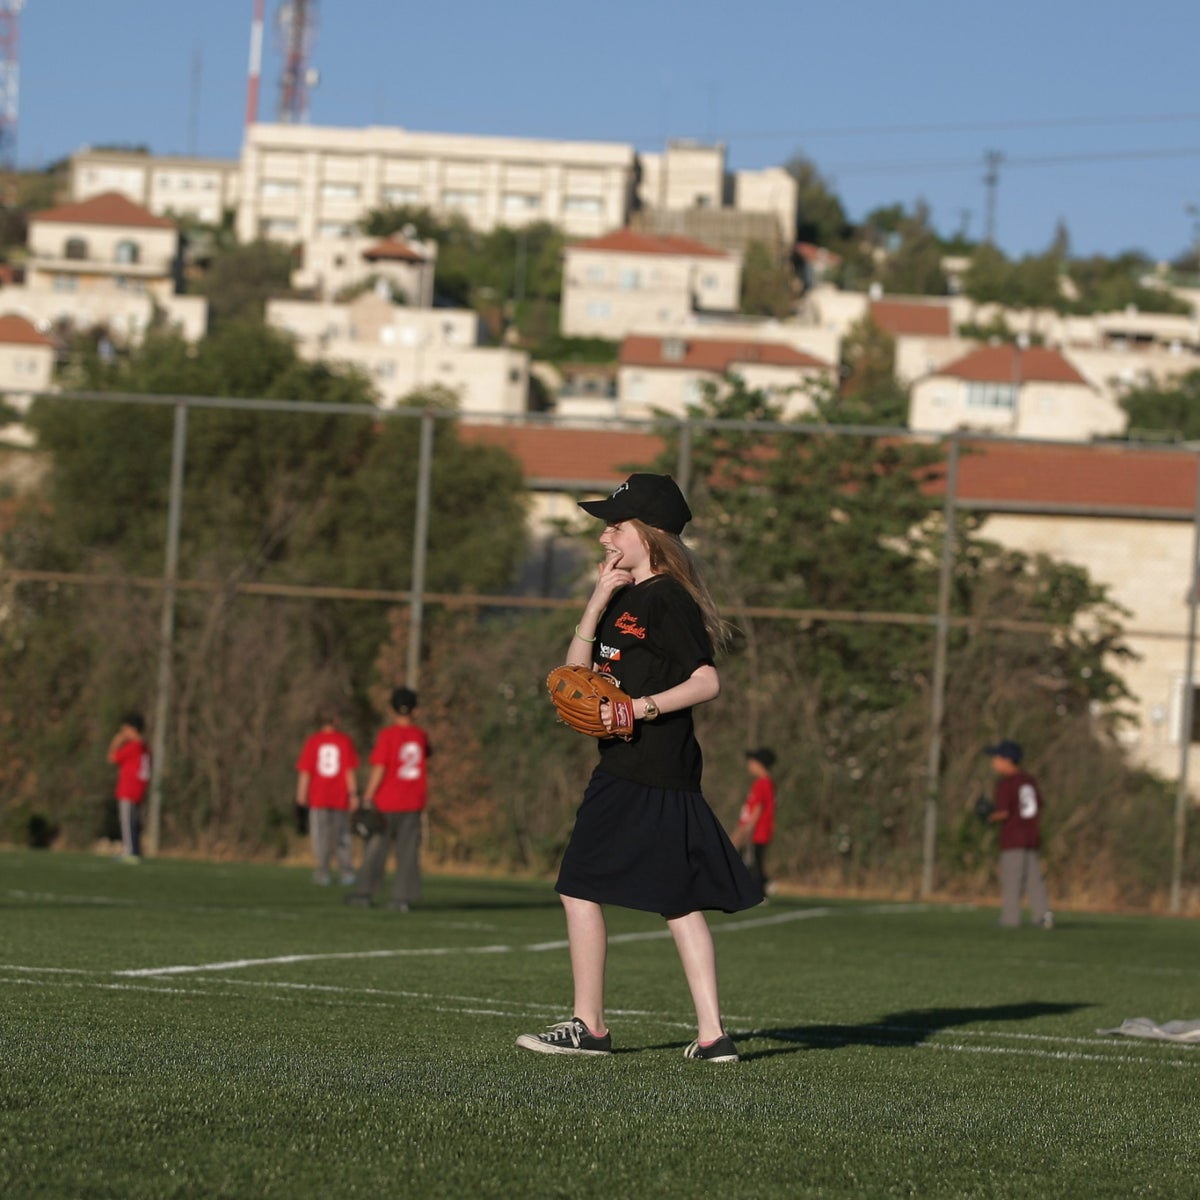 A young girl playing baseball in the West Bank settlement of Efrat.